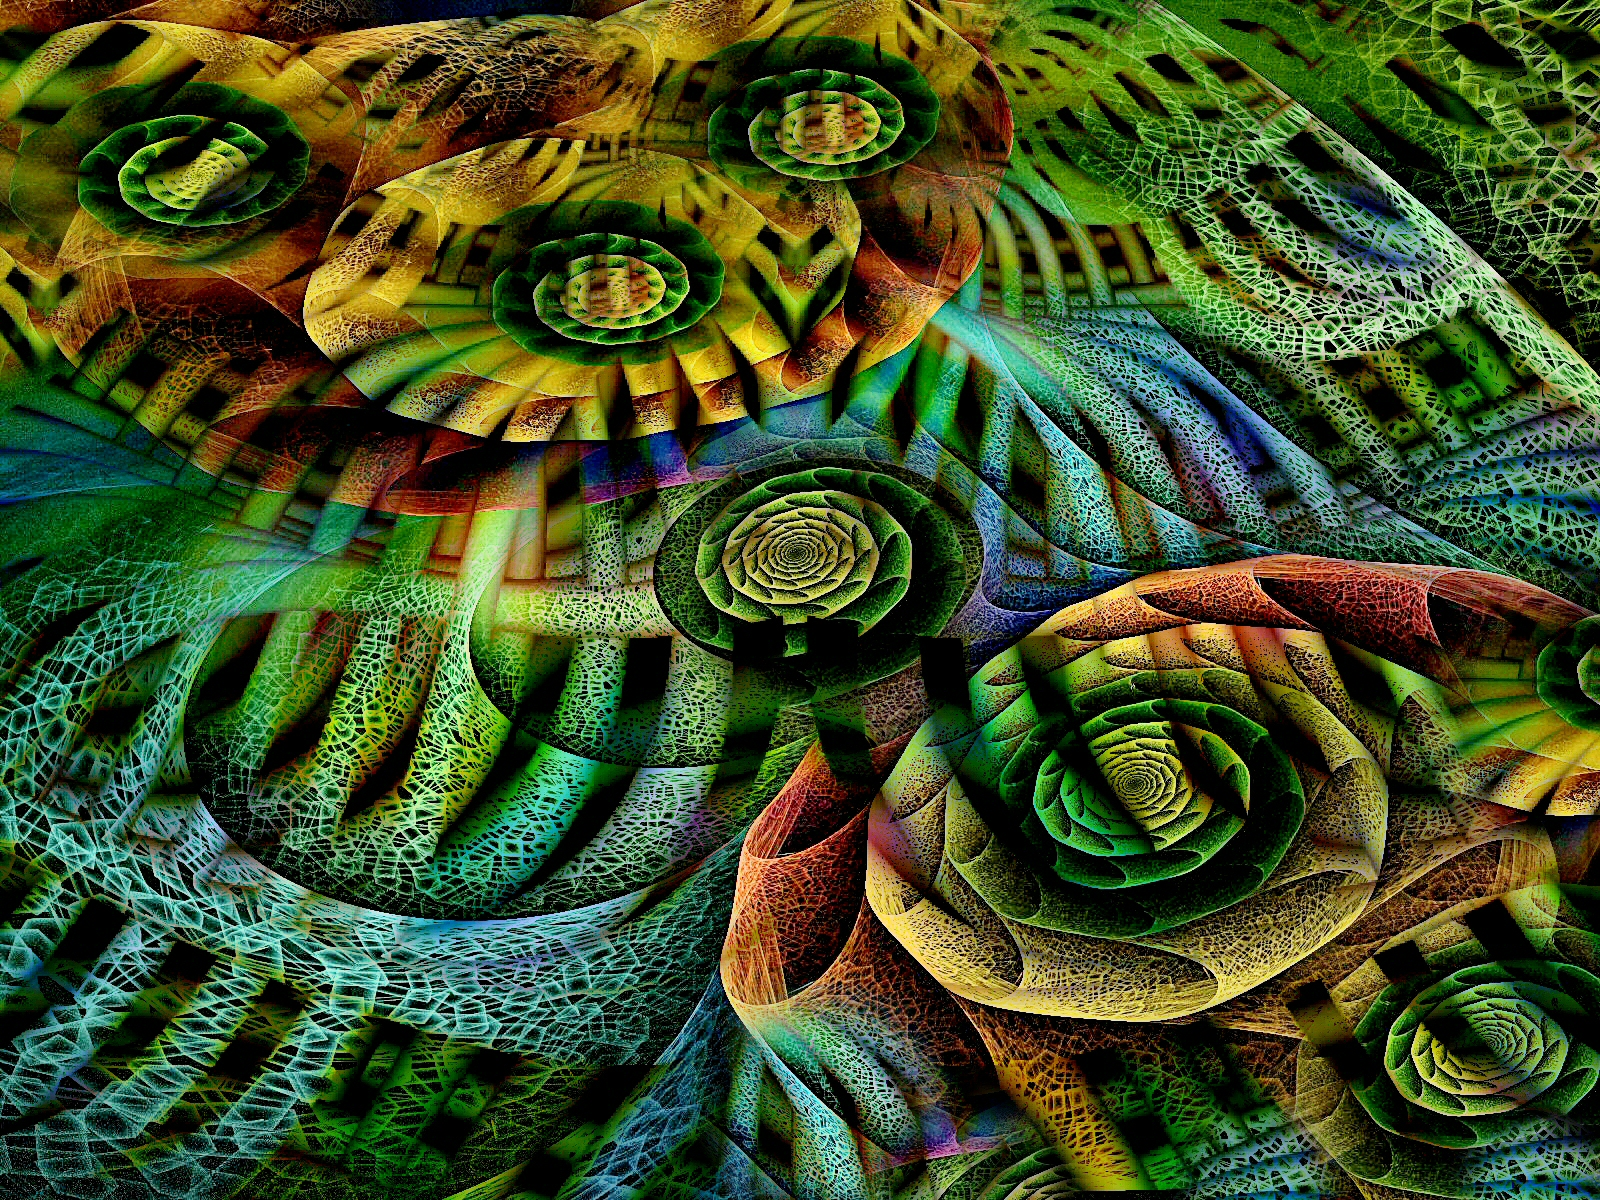 Strangely Fascinating by Thelma1 Strangely Fascinating by Thelma1